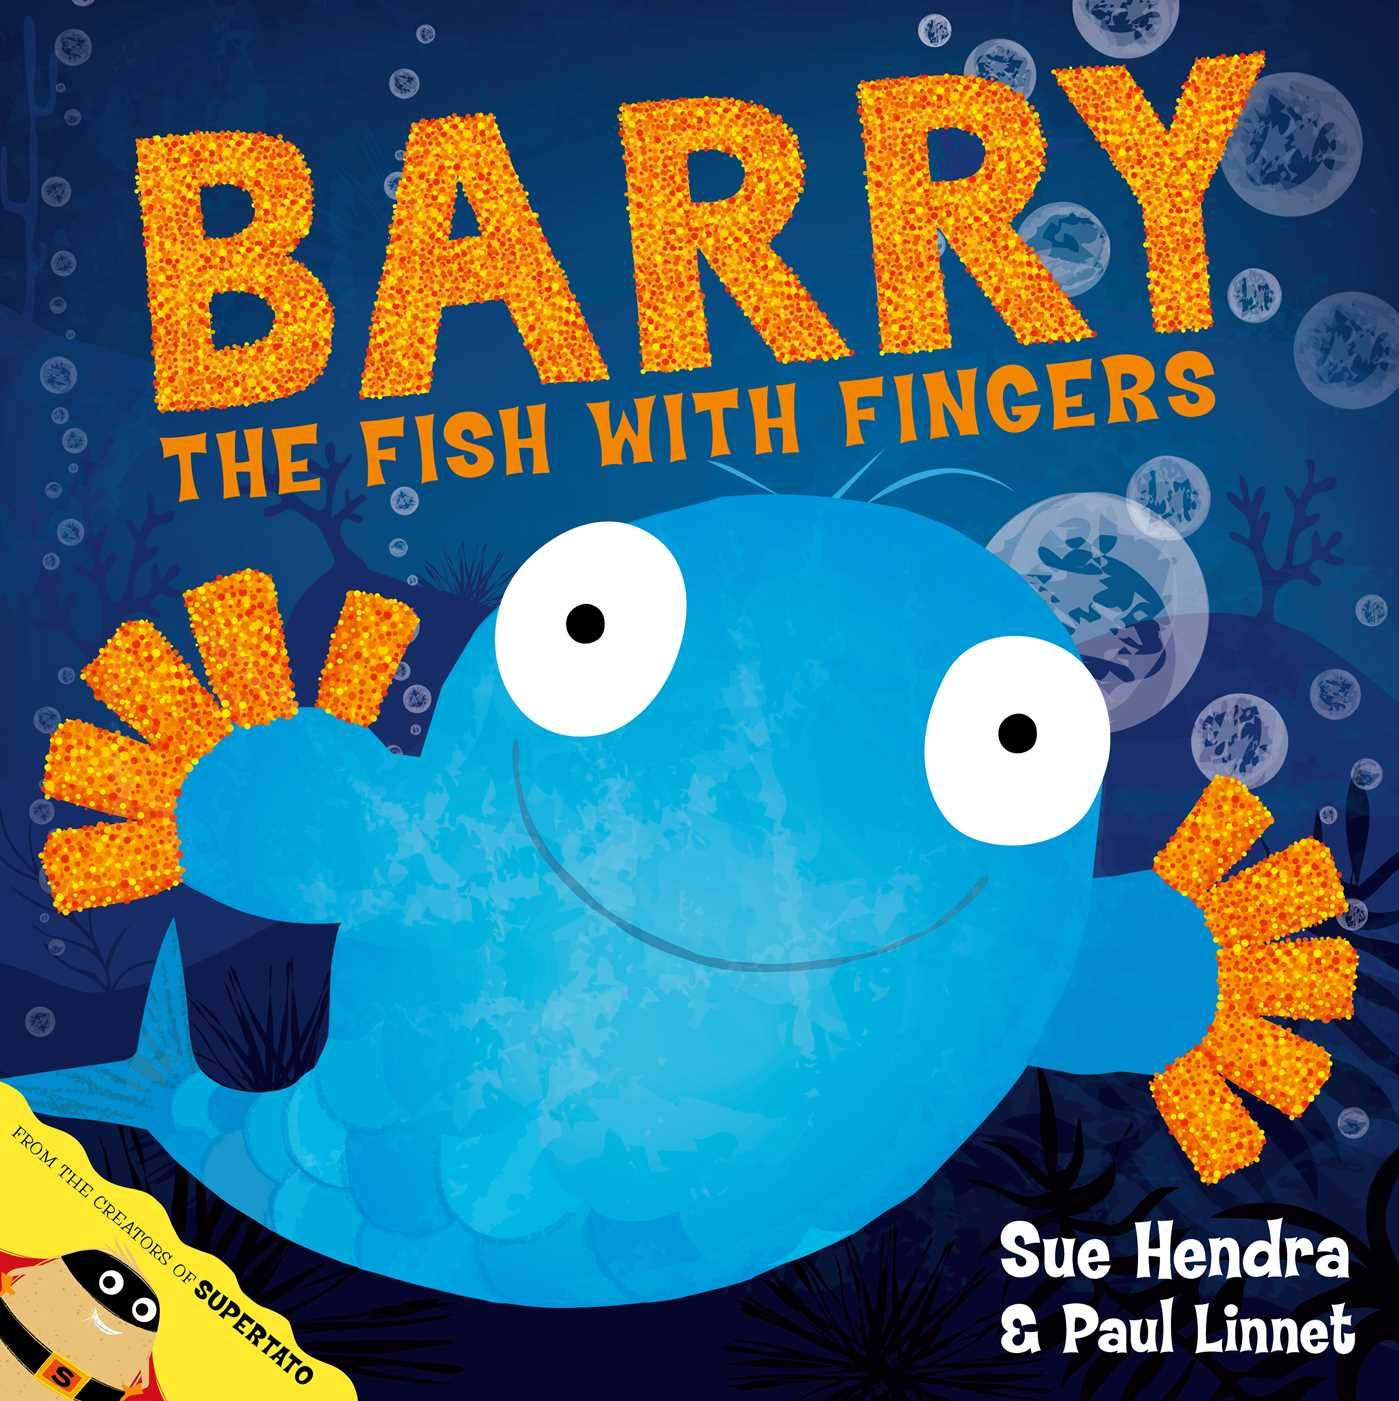 Barry the Fish with Fingers: Amazon.co.uk: Hendra, Sue, Linnet, Paul:  9781847385161: Books